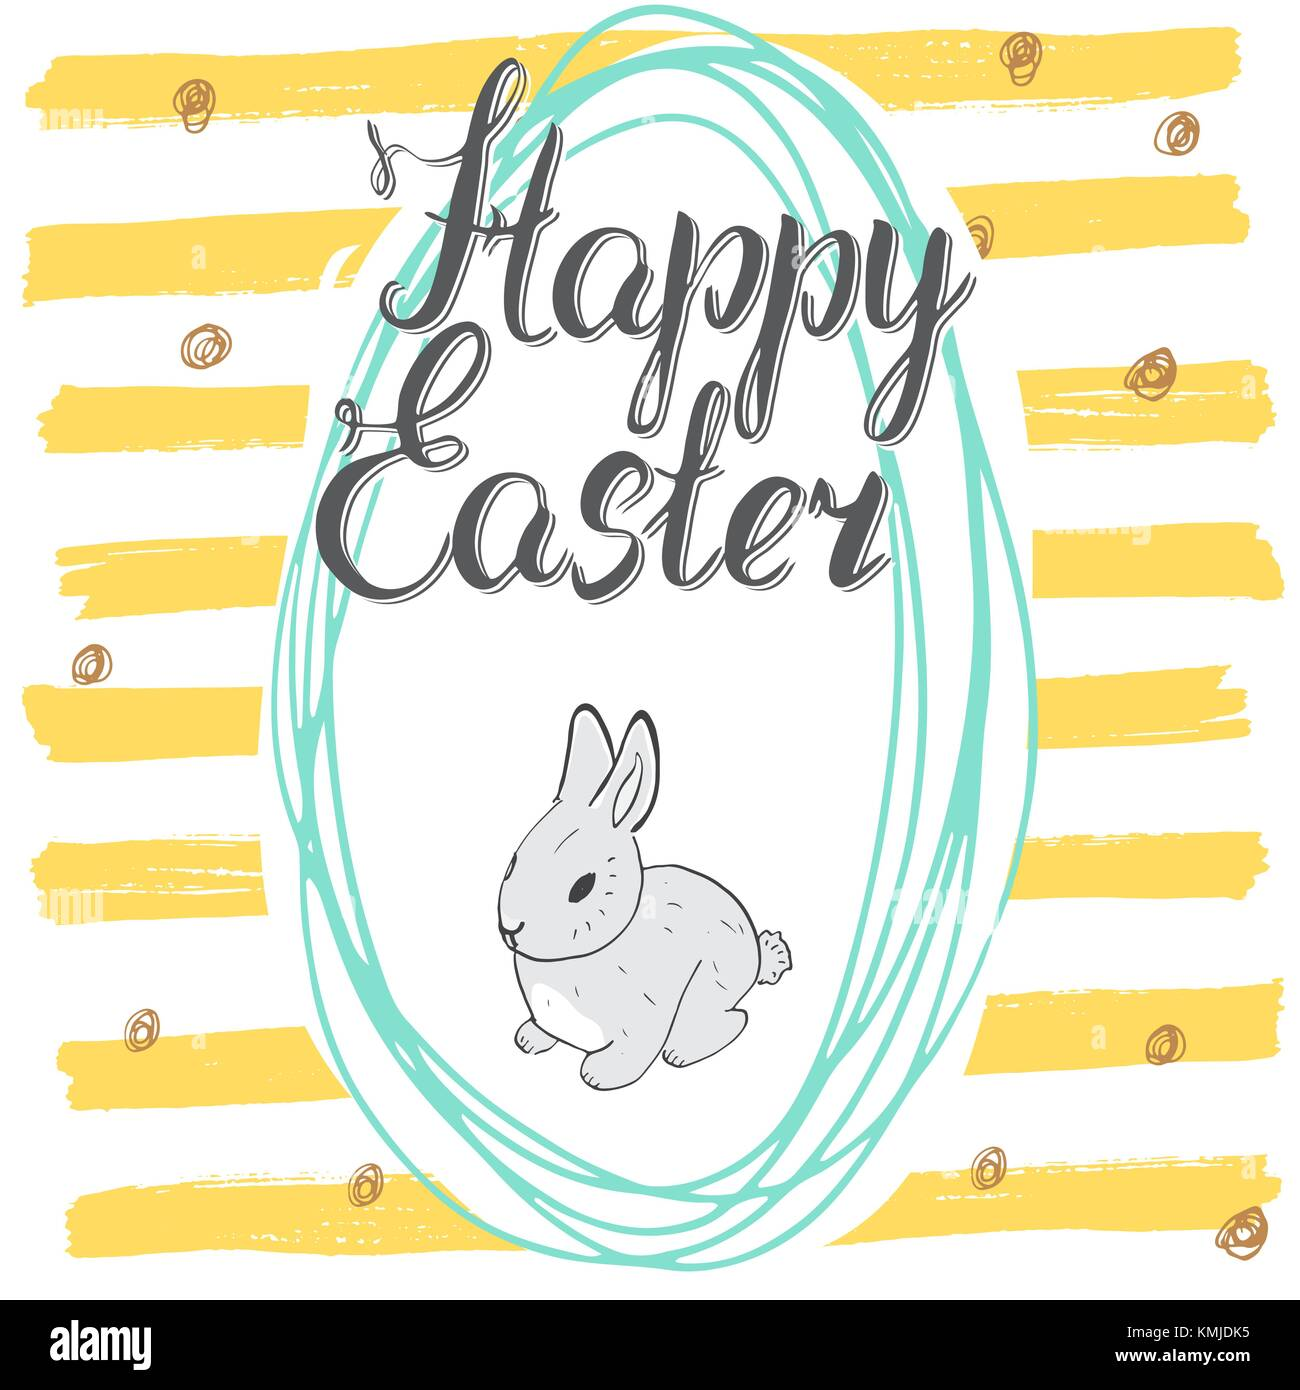 Happy easter hand drawn greeting card with lettering and sketched happy easter hand drawn greeting card with lettering and sketched doodle elements cute rabbit in easter kristyandbryce Gallery